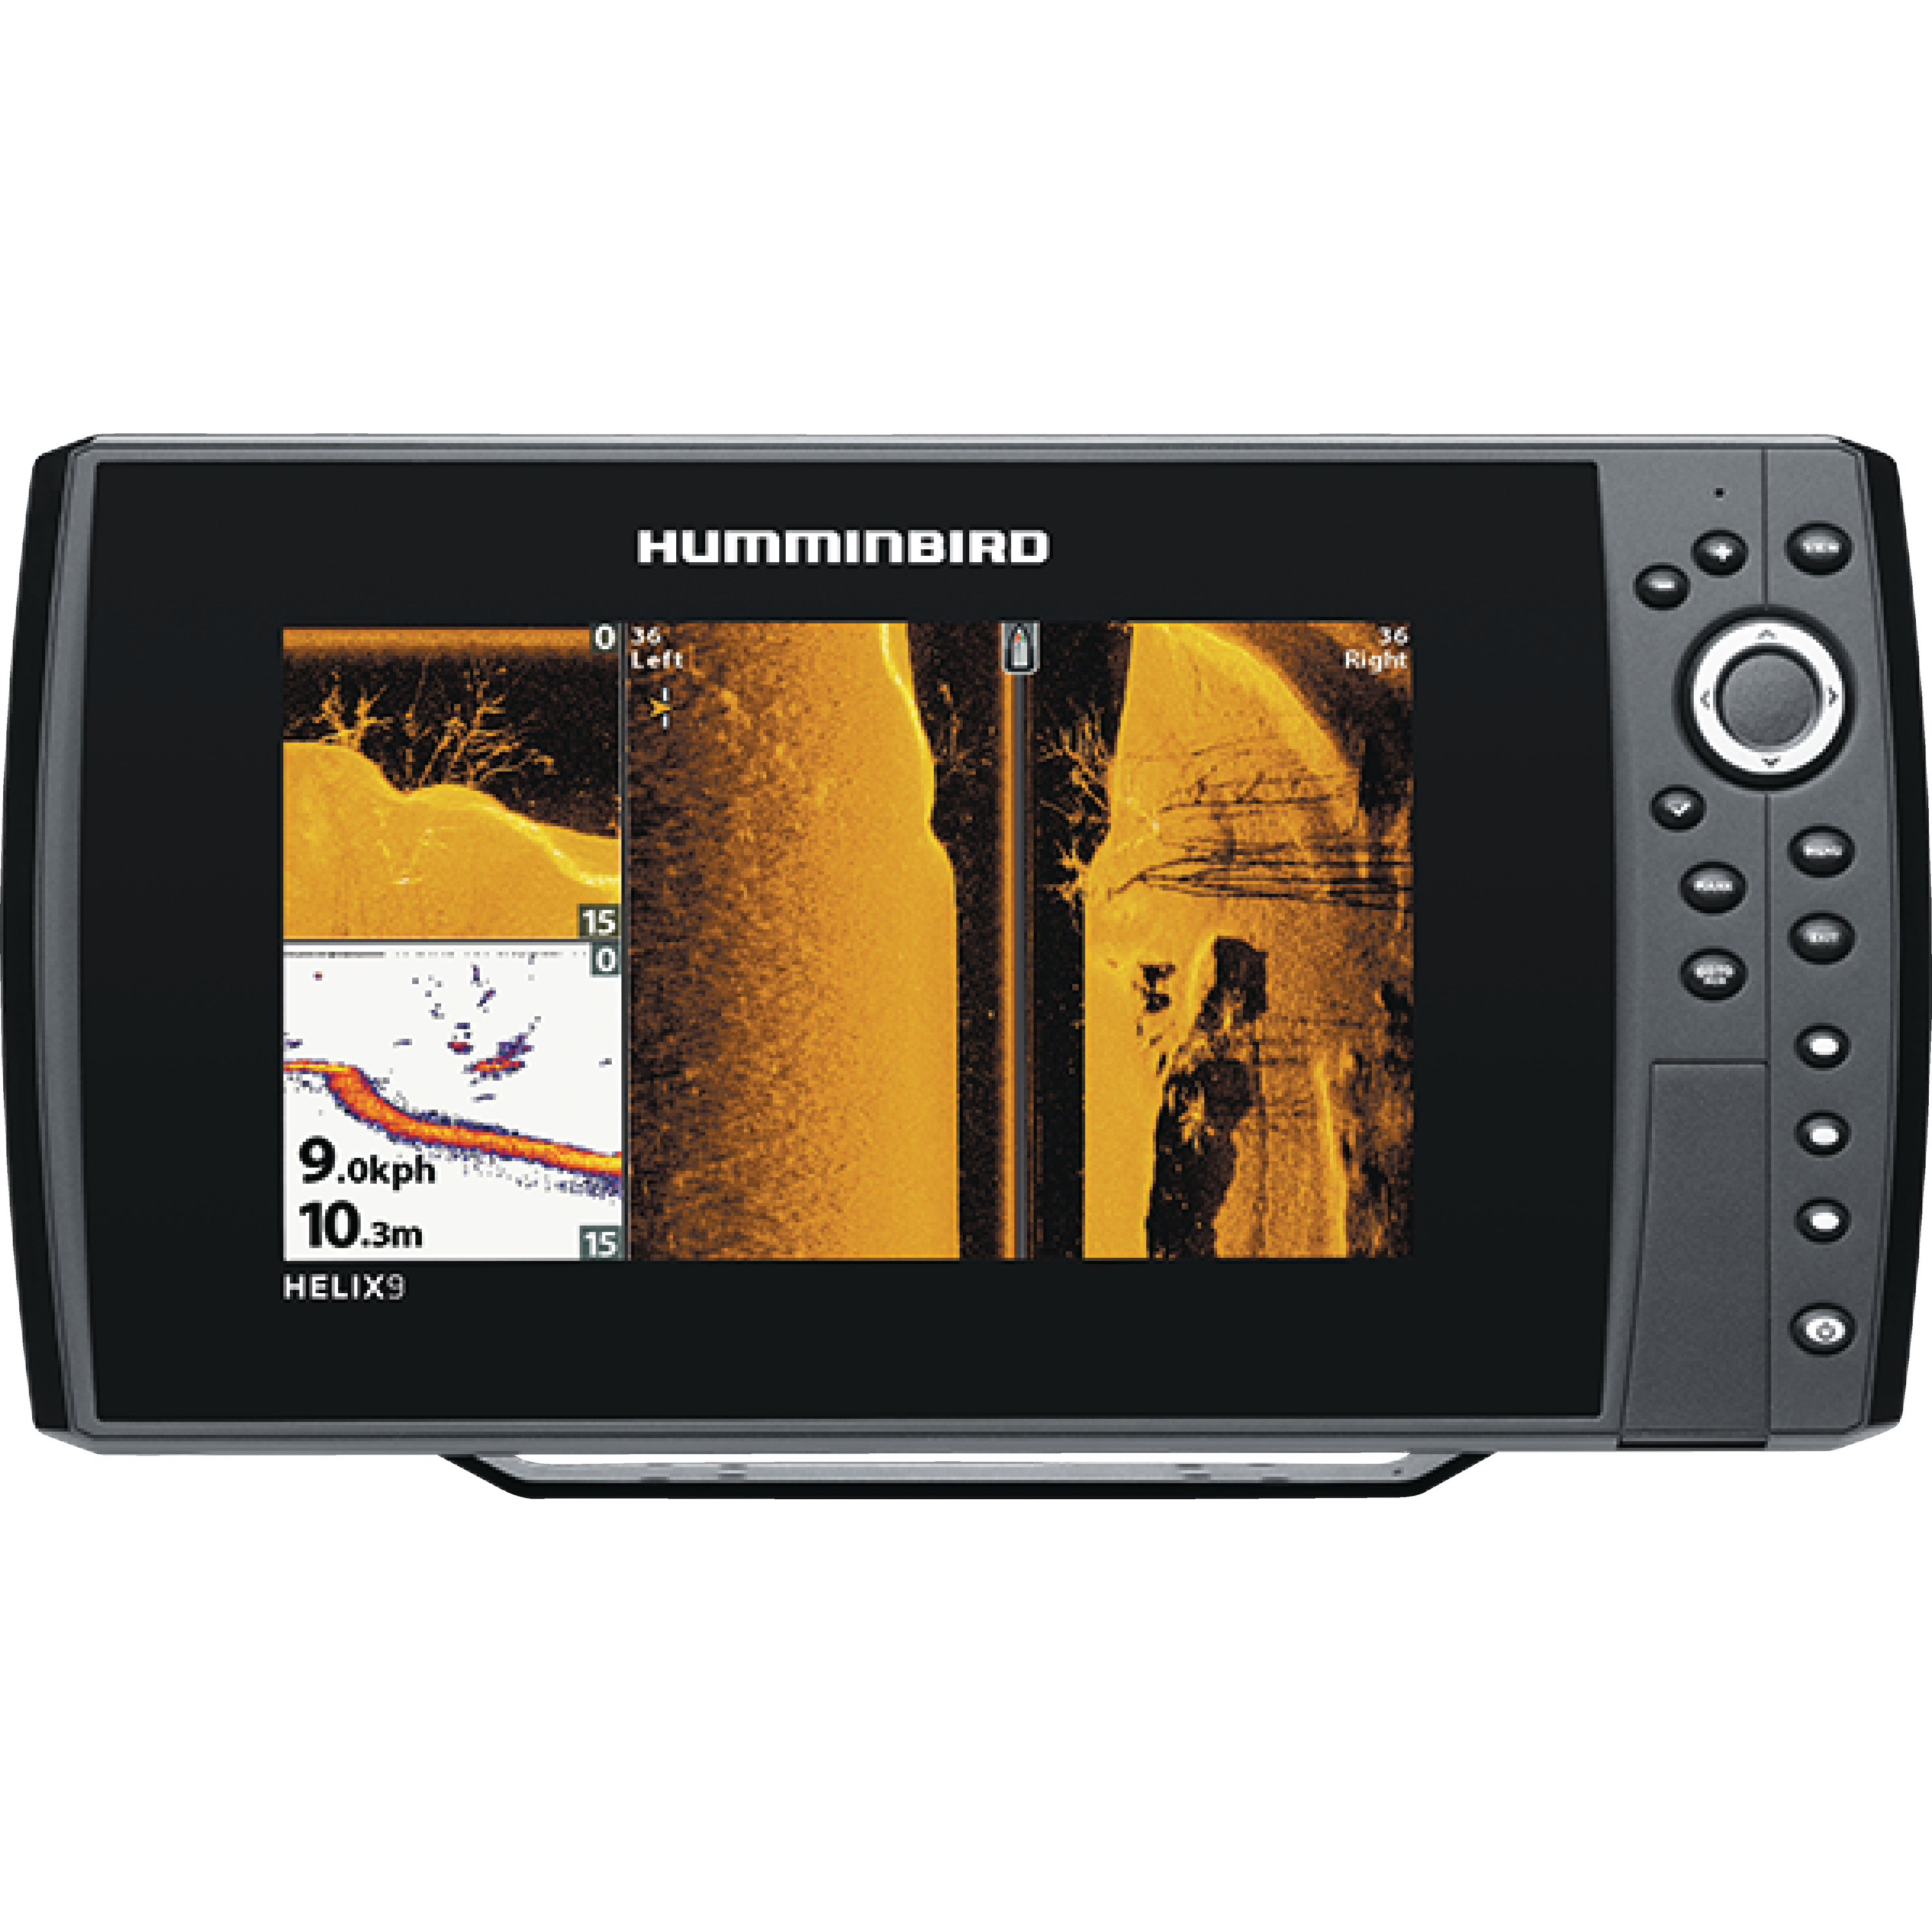 "Humminbird 409950-1 HELIX 9 SI GPS Sonar Fishfinder & Chartplotter with Down & Side Imaging & 9"" HD Display"